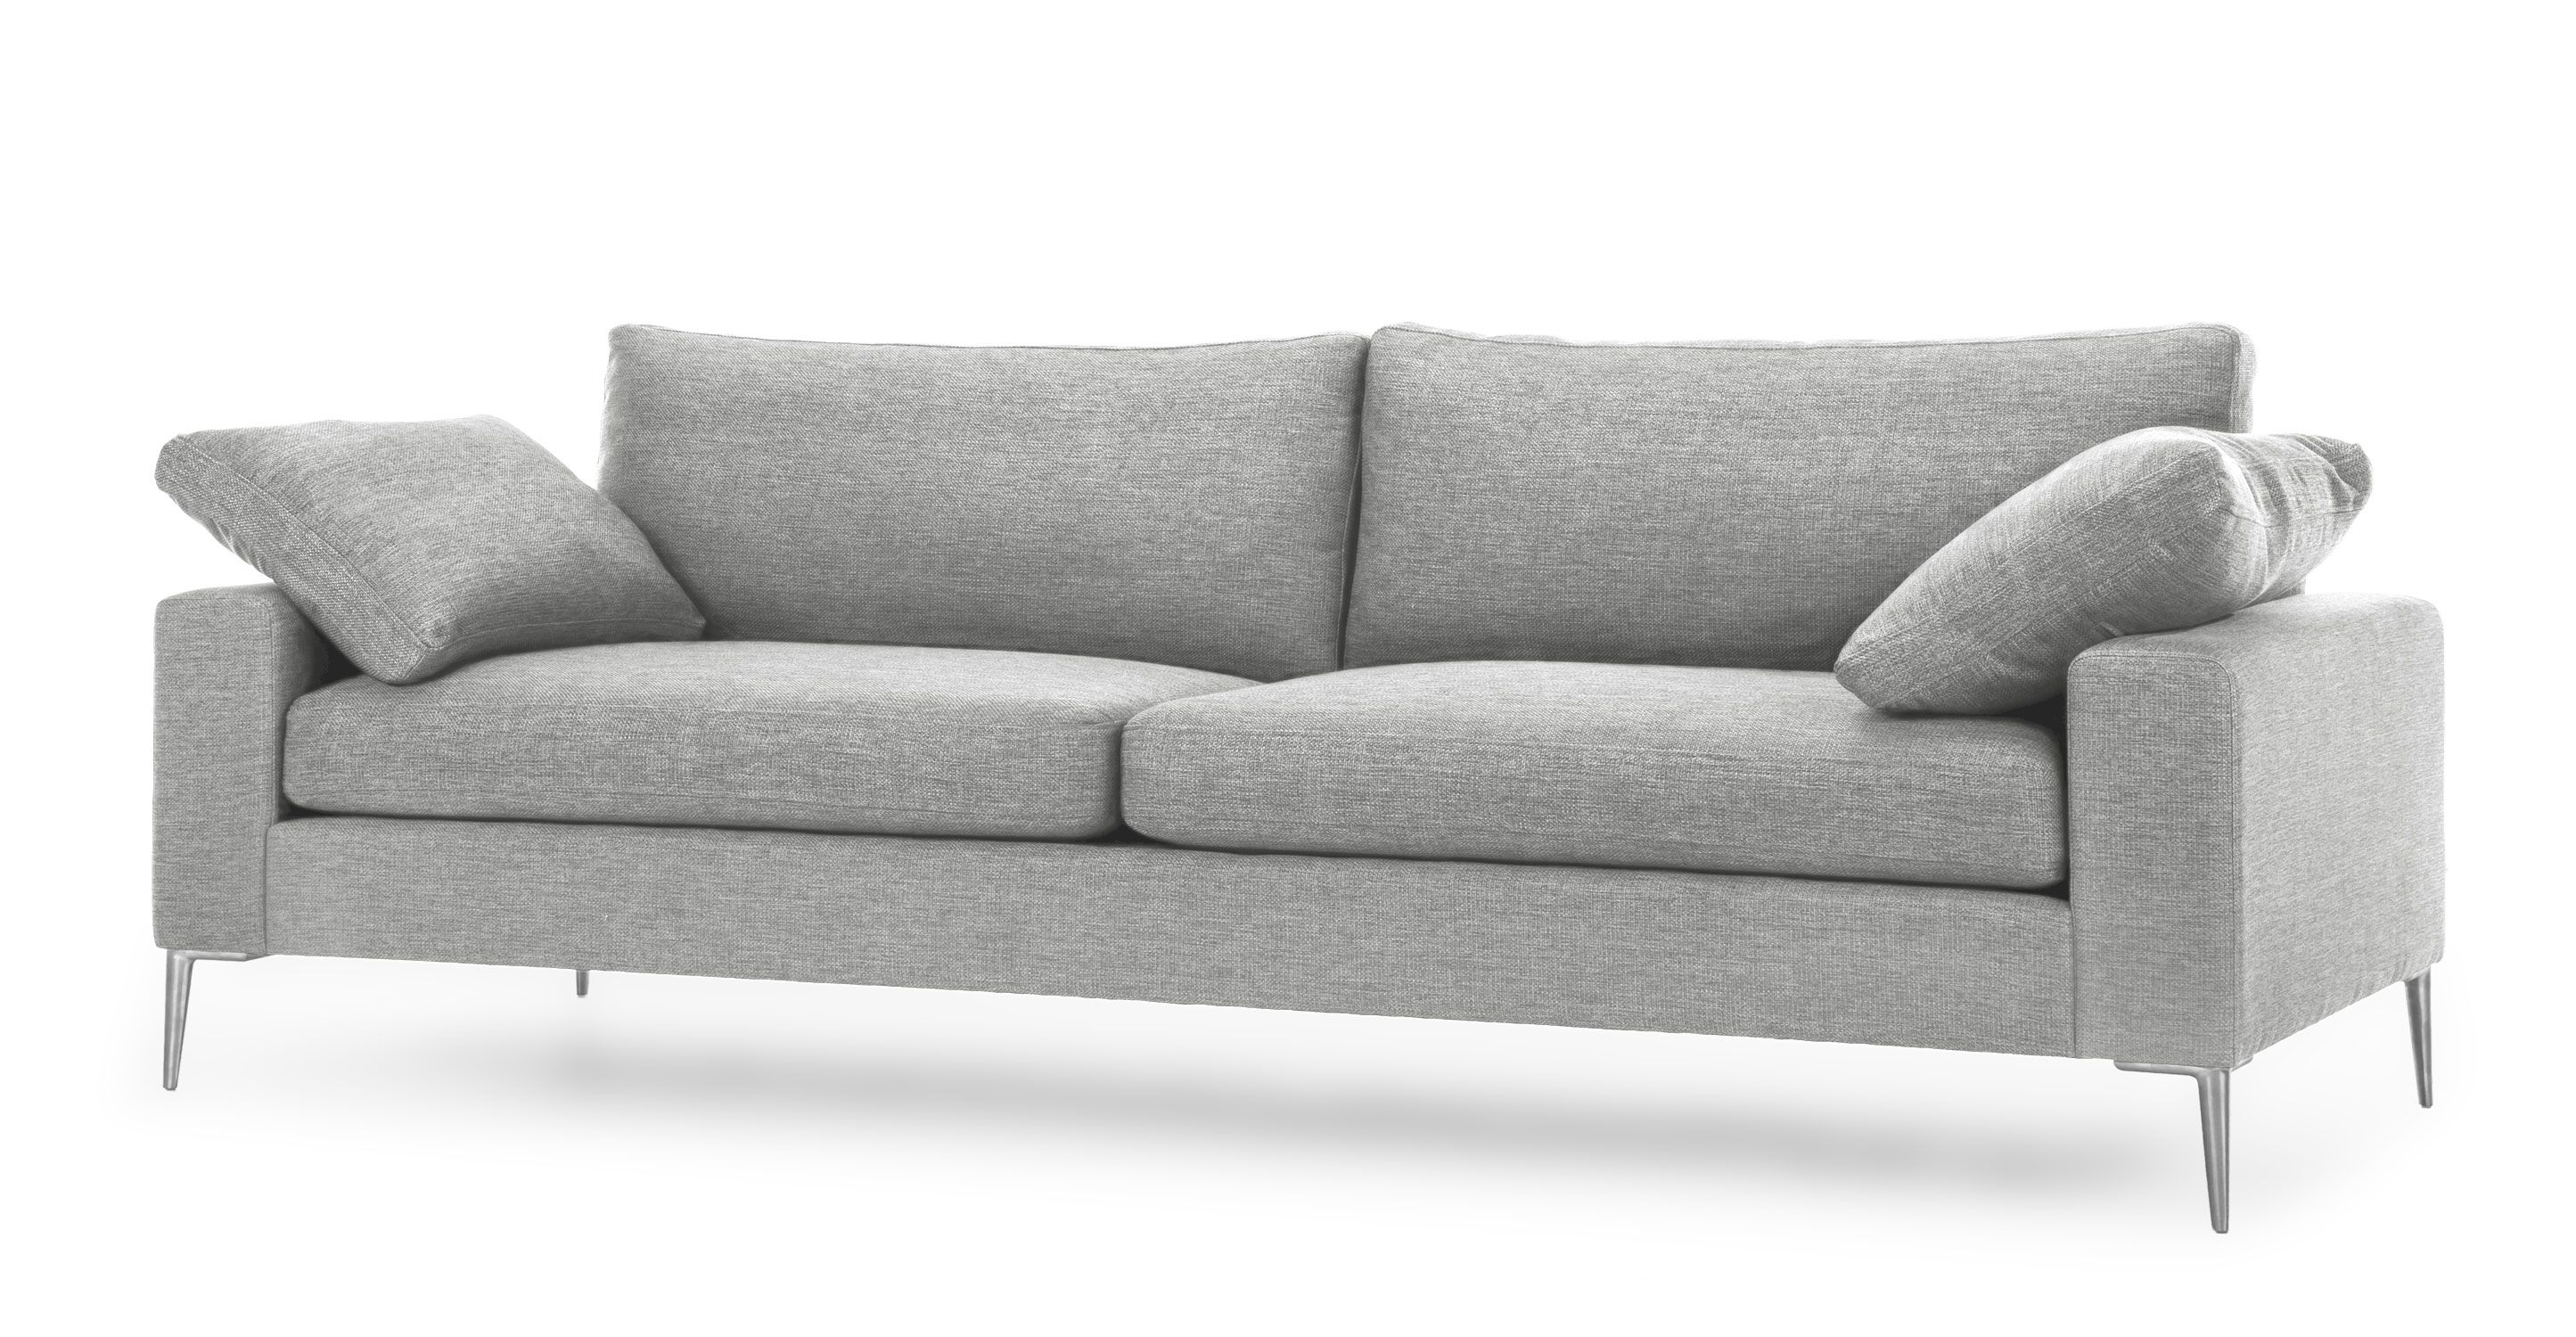 Light Gray Sofa 3 Seater With Metal Legs